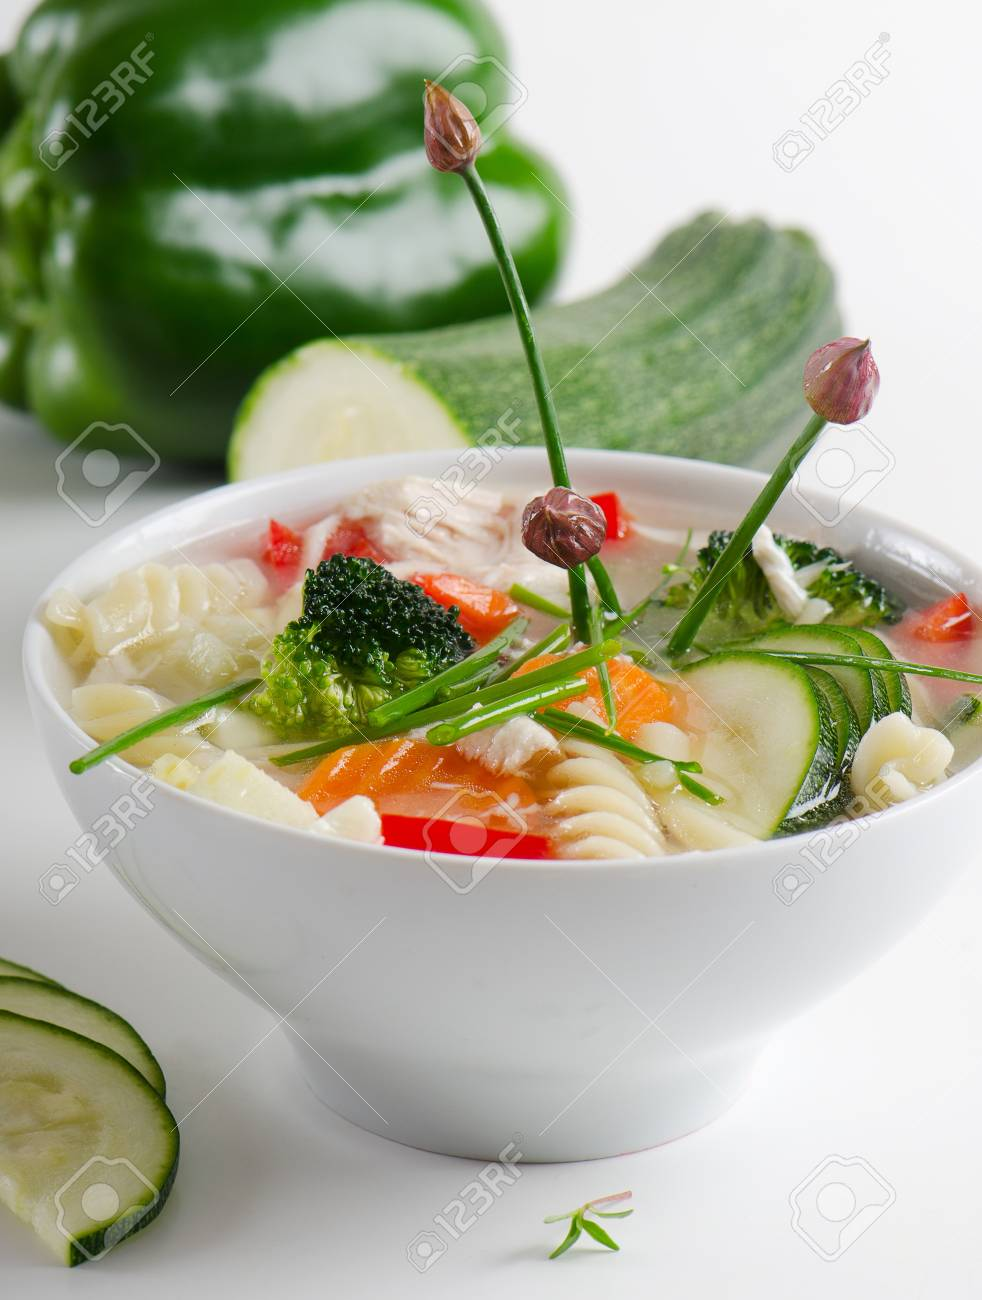 Bowl of vegetable Soup Stock Photo - 13658745